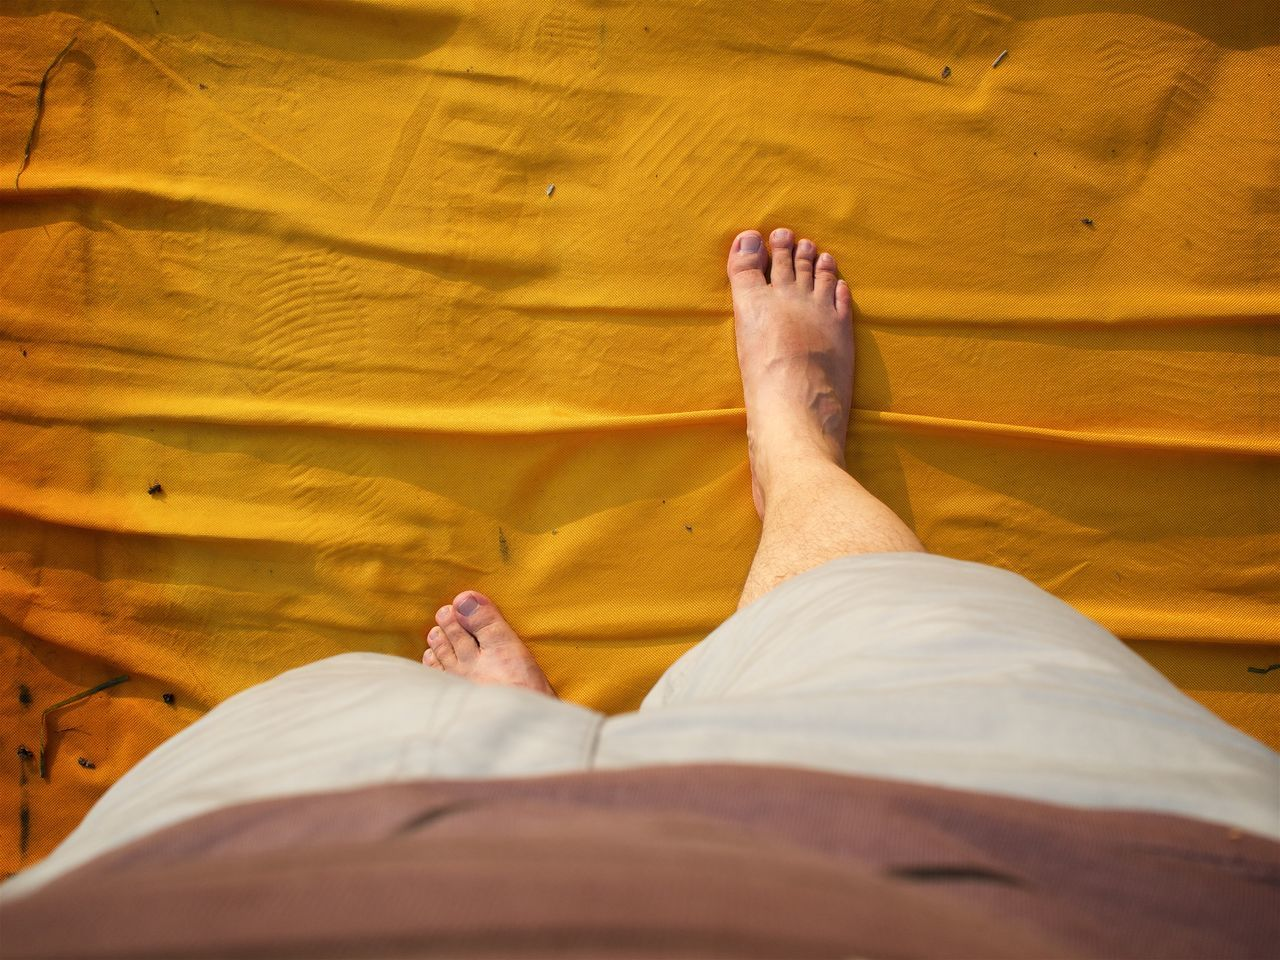 Art Barefoot Casual Clothing Christo Close-up Day Floating Piers Hardwood Floor Human Foot Iseo Lake Italy Lake Leisure Activity Lifestyles Low Section Part Of Person Personal Perspective Relaxation Walking On Water